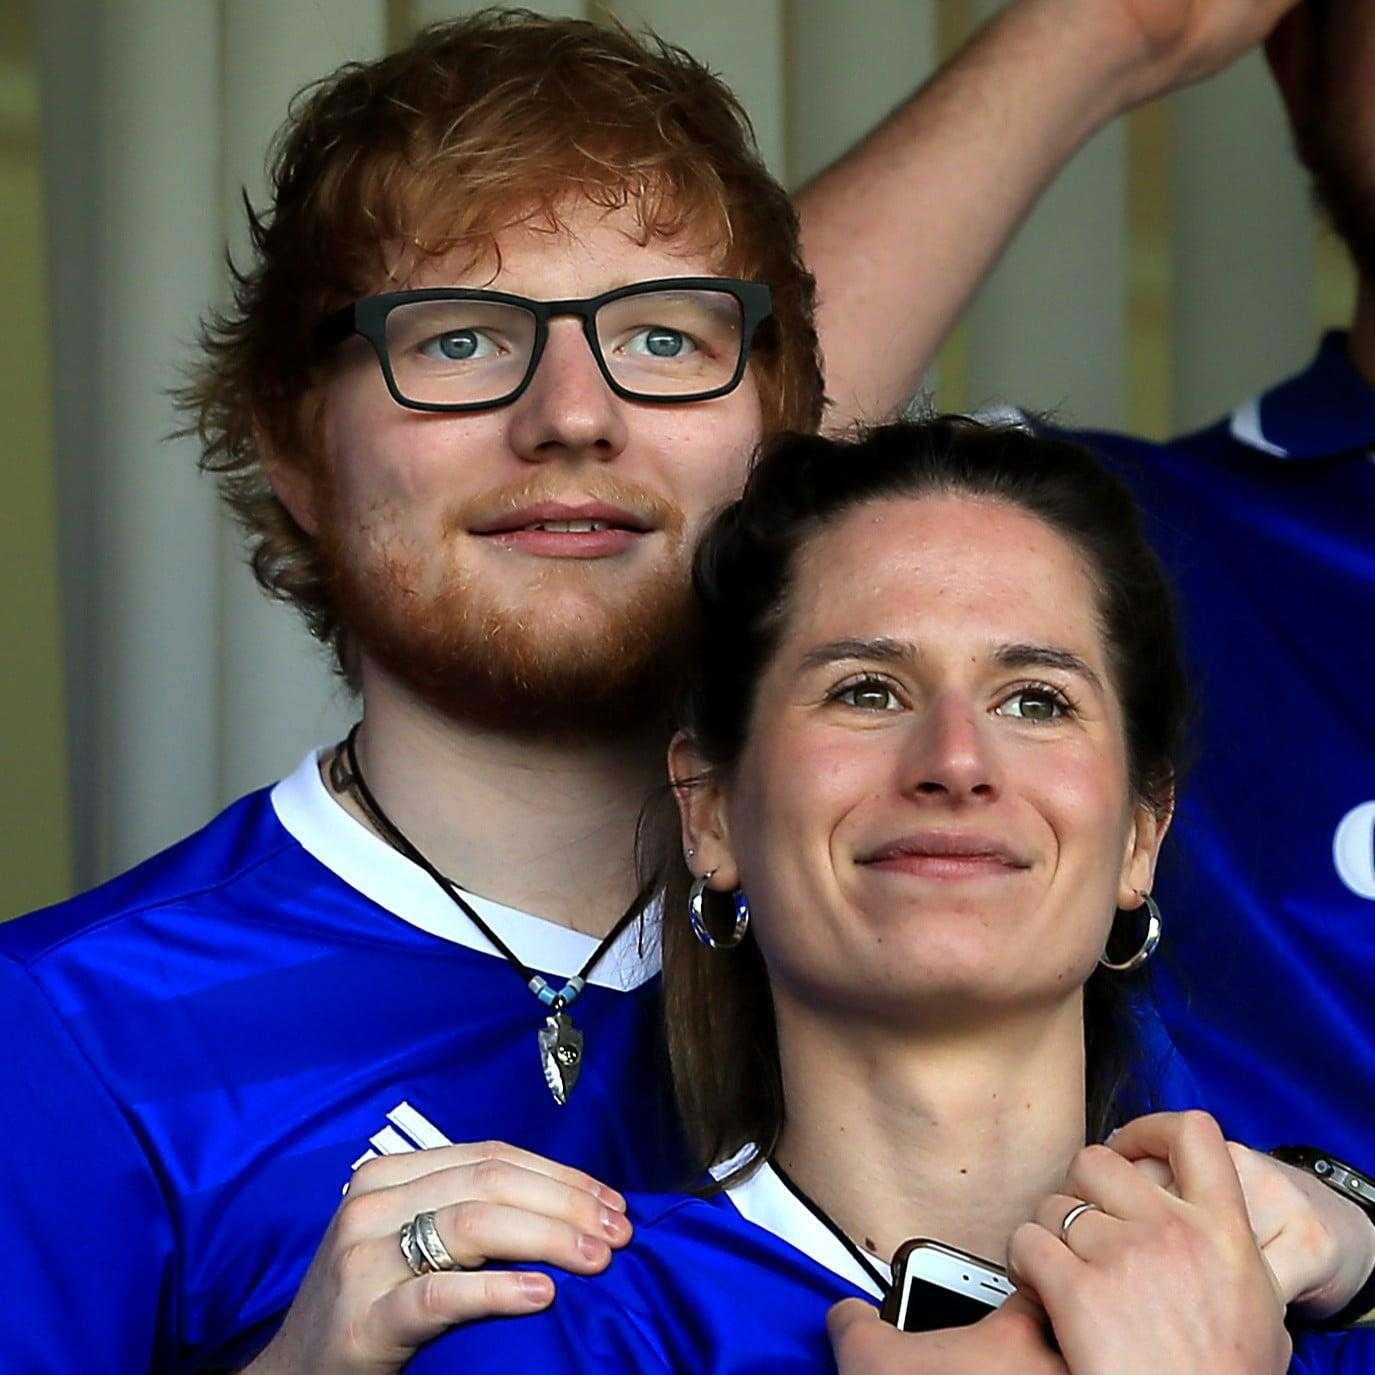 Ed Sheeran Surprises Couple At Their Wedding To Sing For: Surprise! Ed Sheeran And Cherry Seaborn Reportedly Got